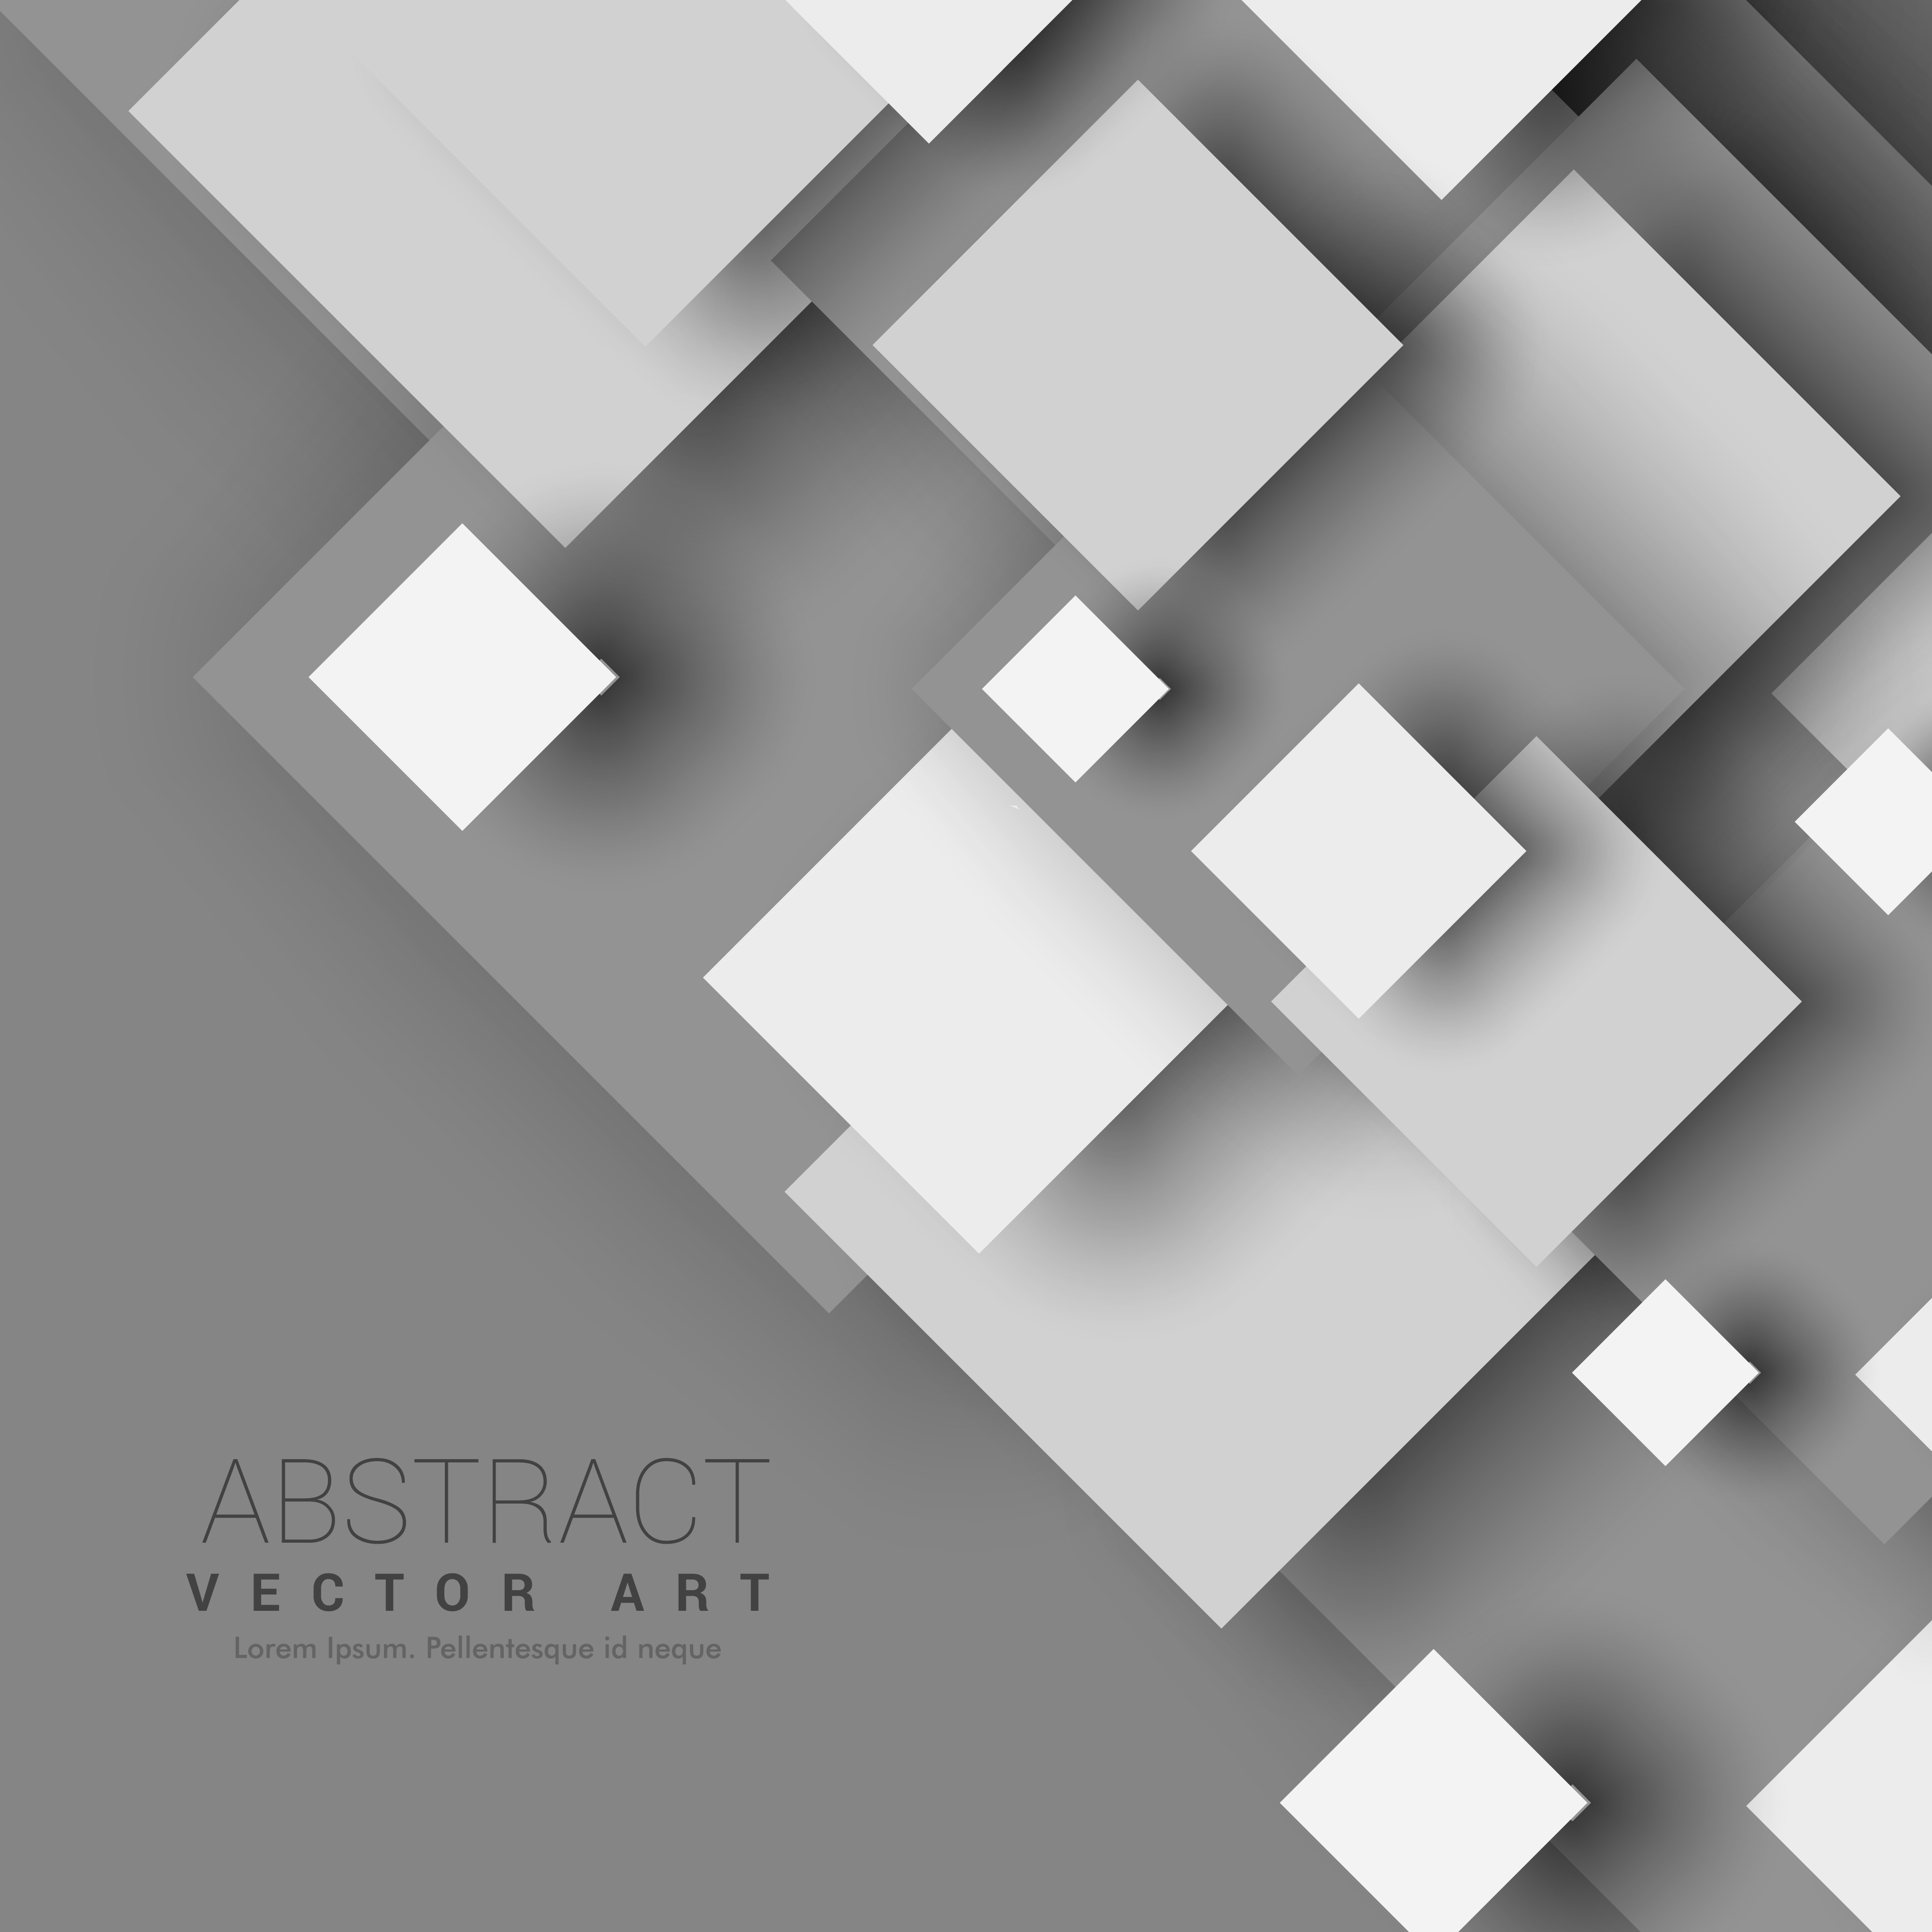 abstract 3d geometric shapes with shadow effect - download free